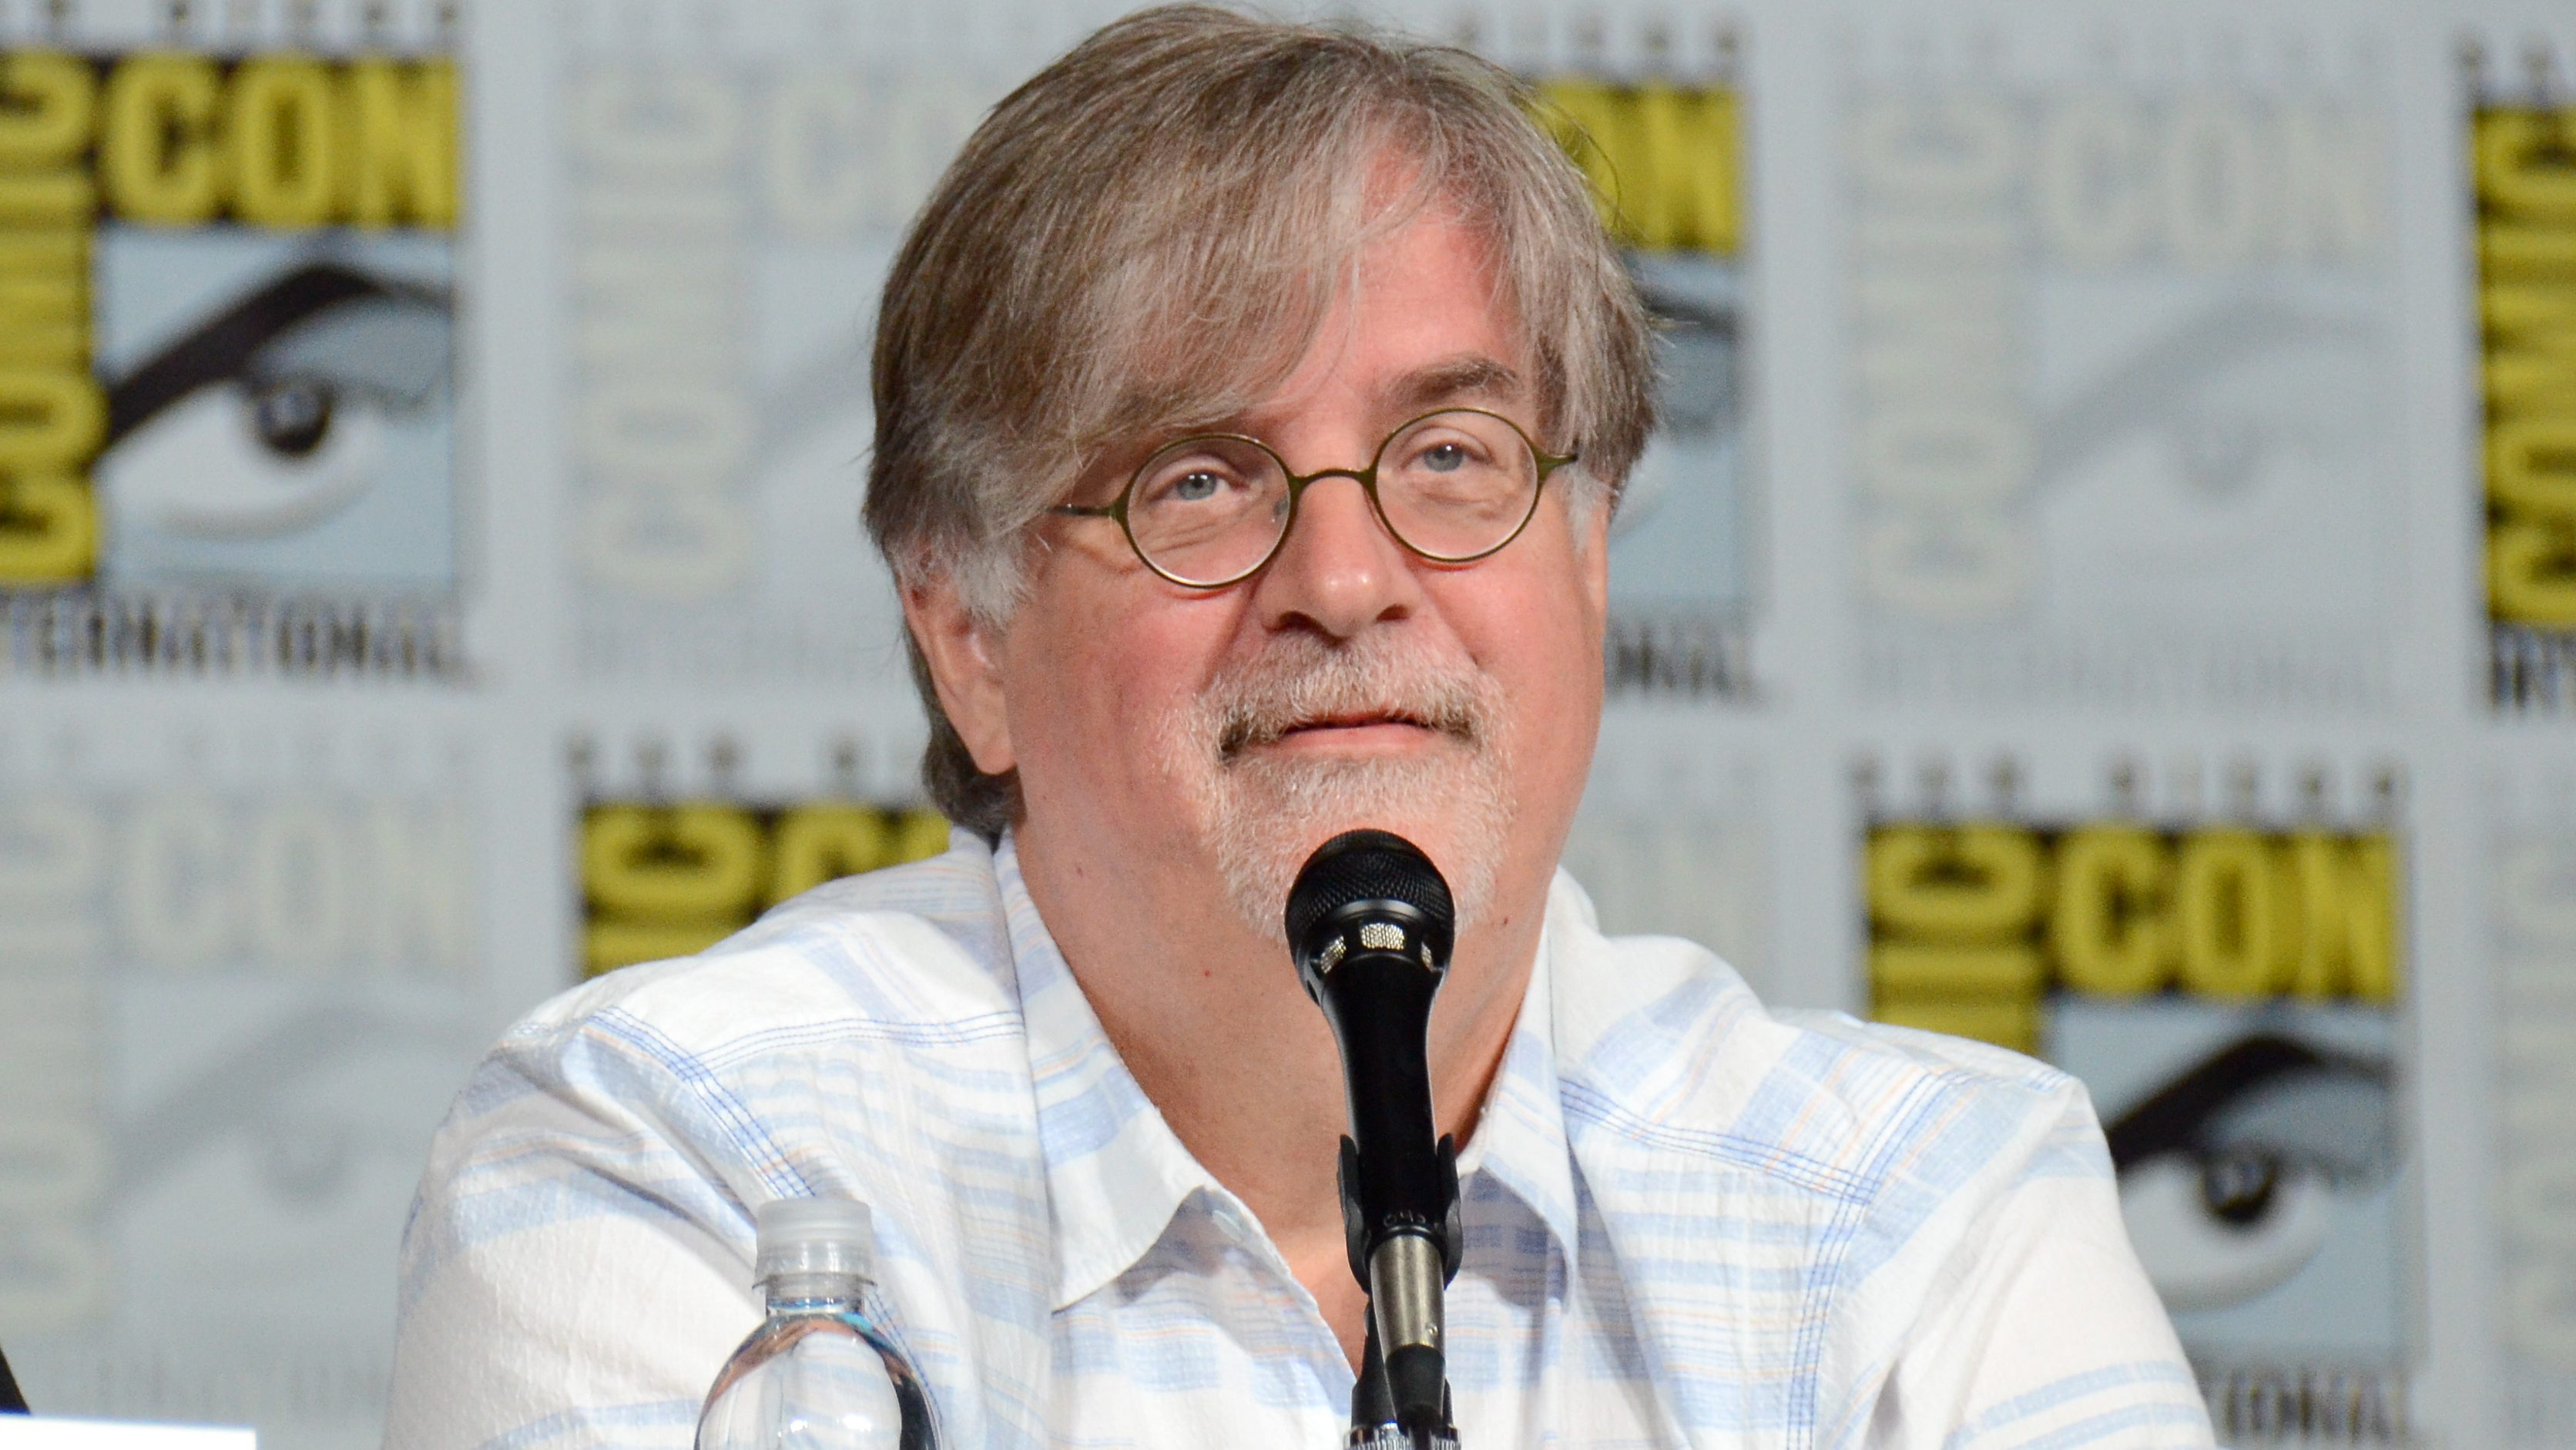 Matt Groening The Simpsons creator